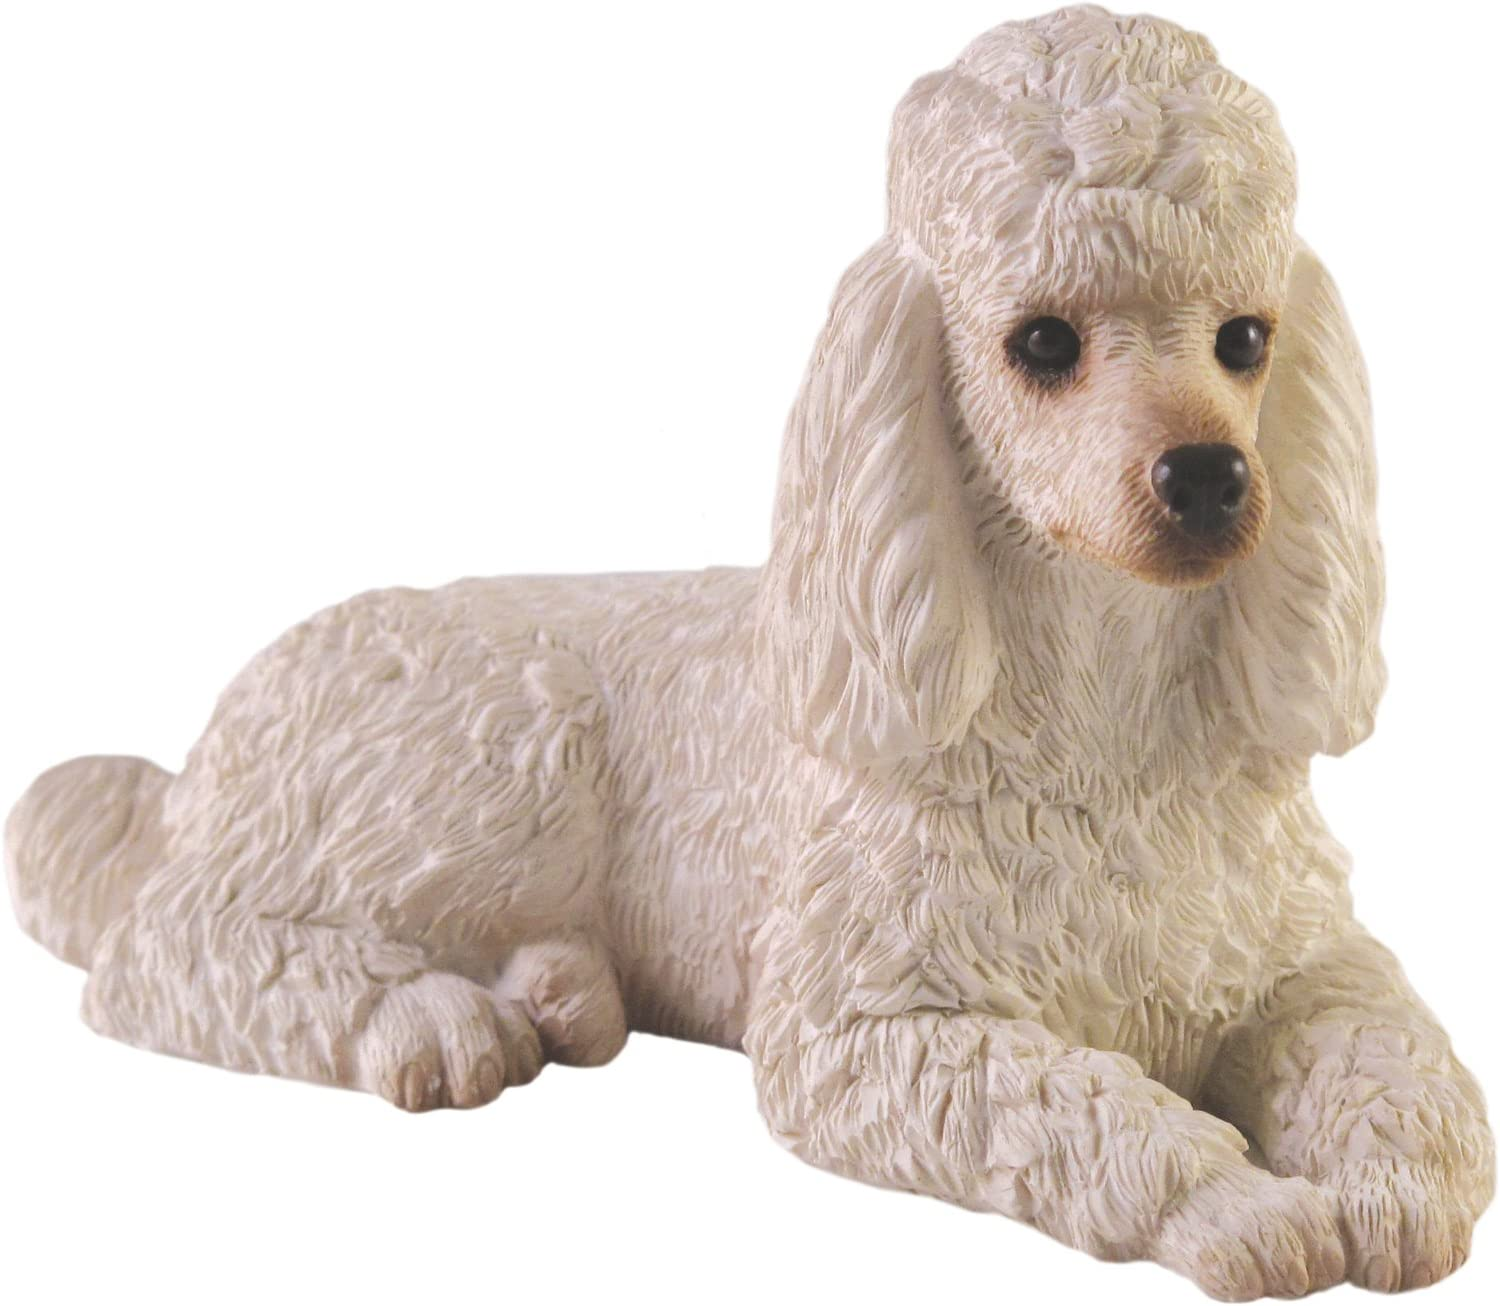 Sandicast Small Size White Poodle Sculpture, Lying